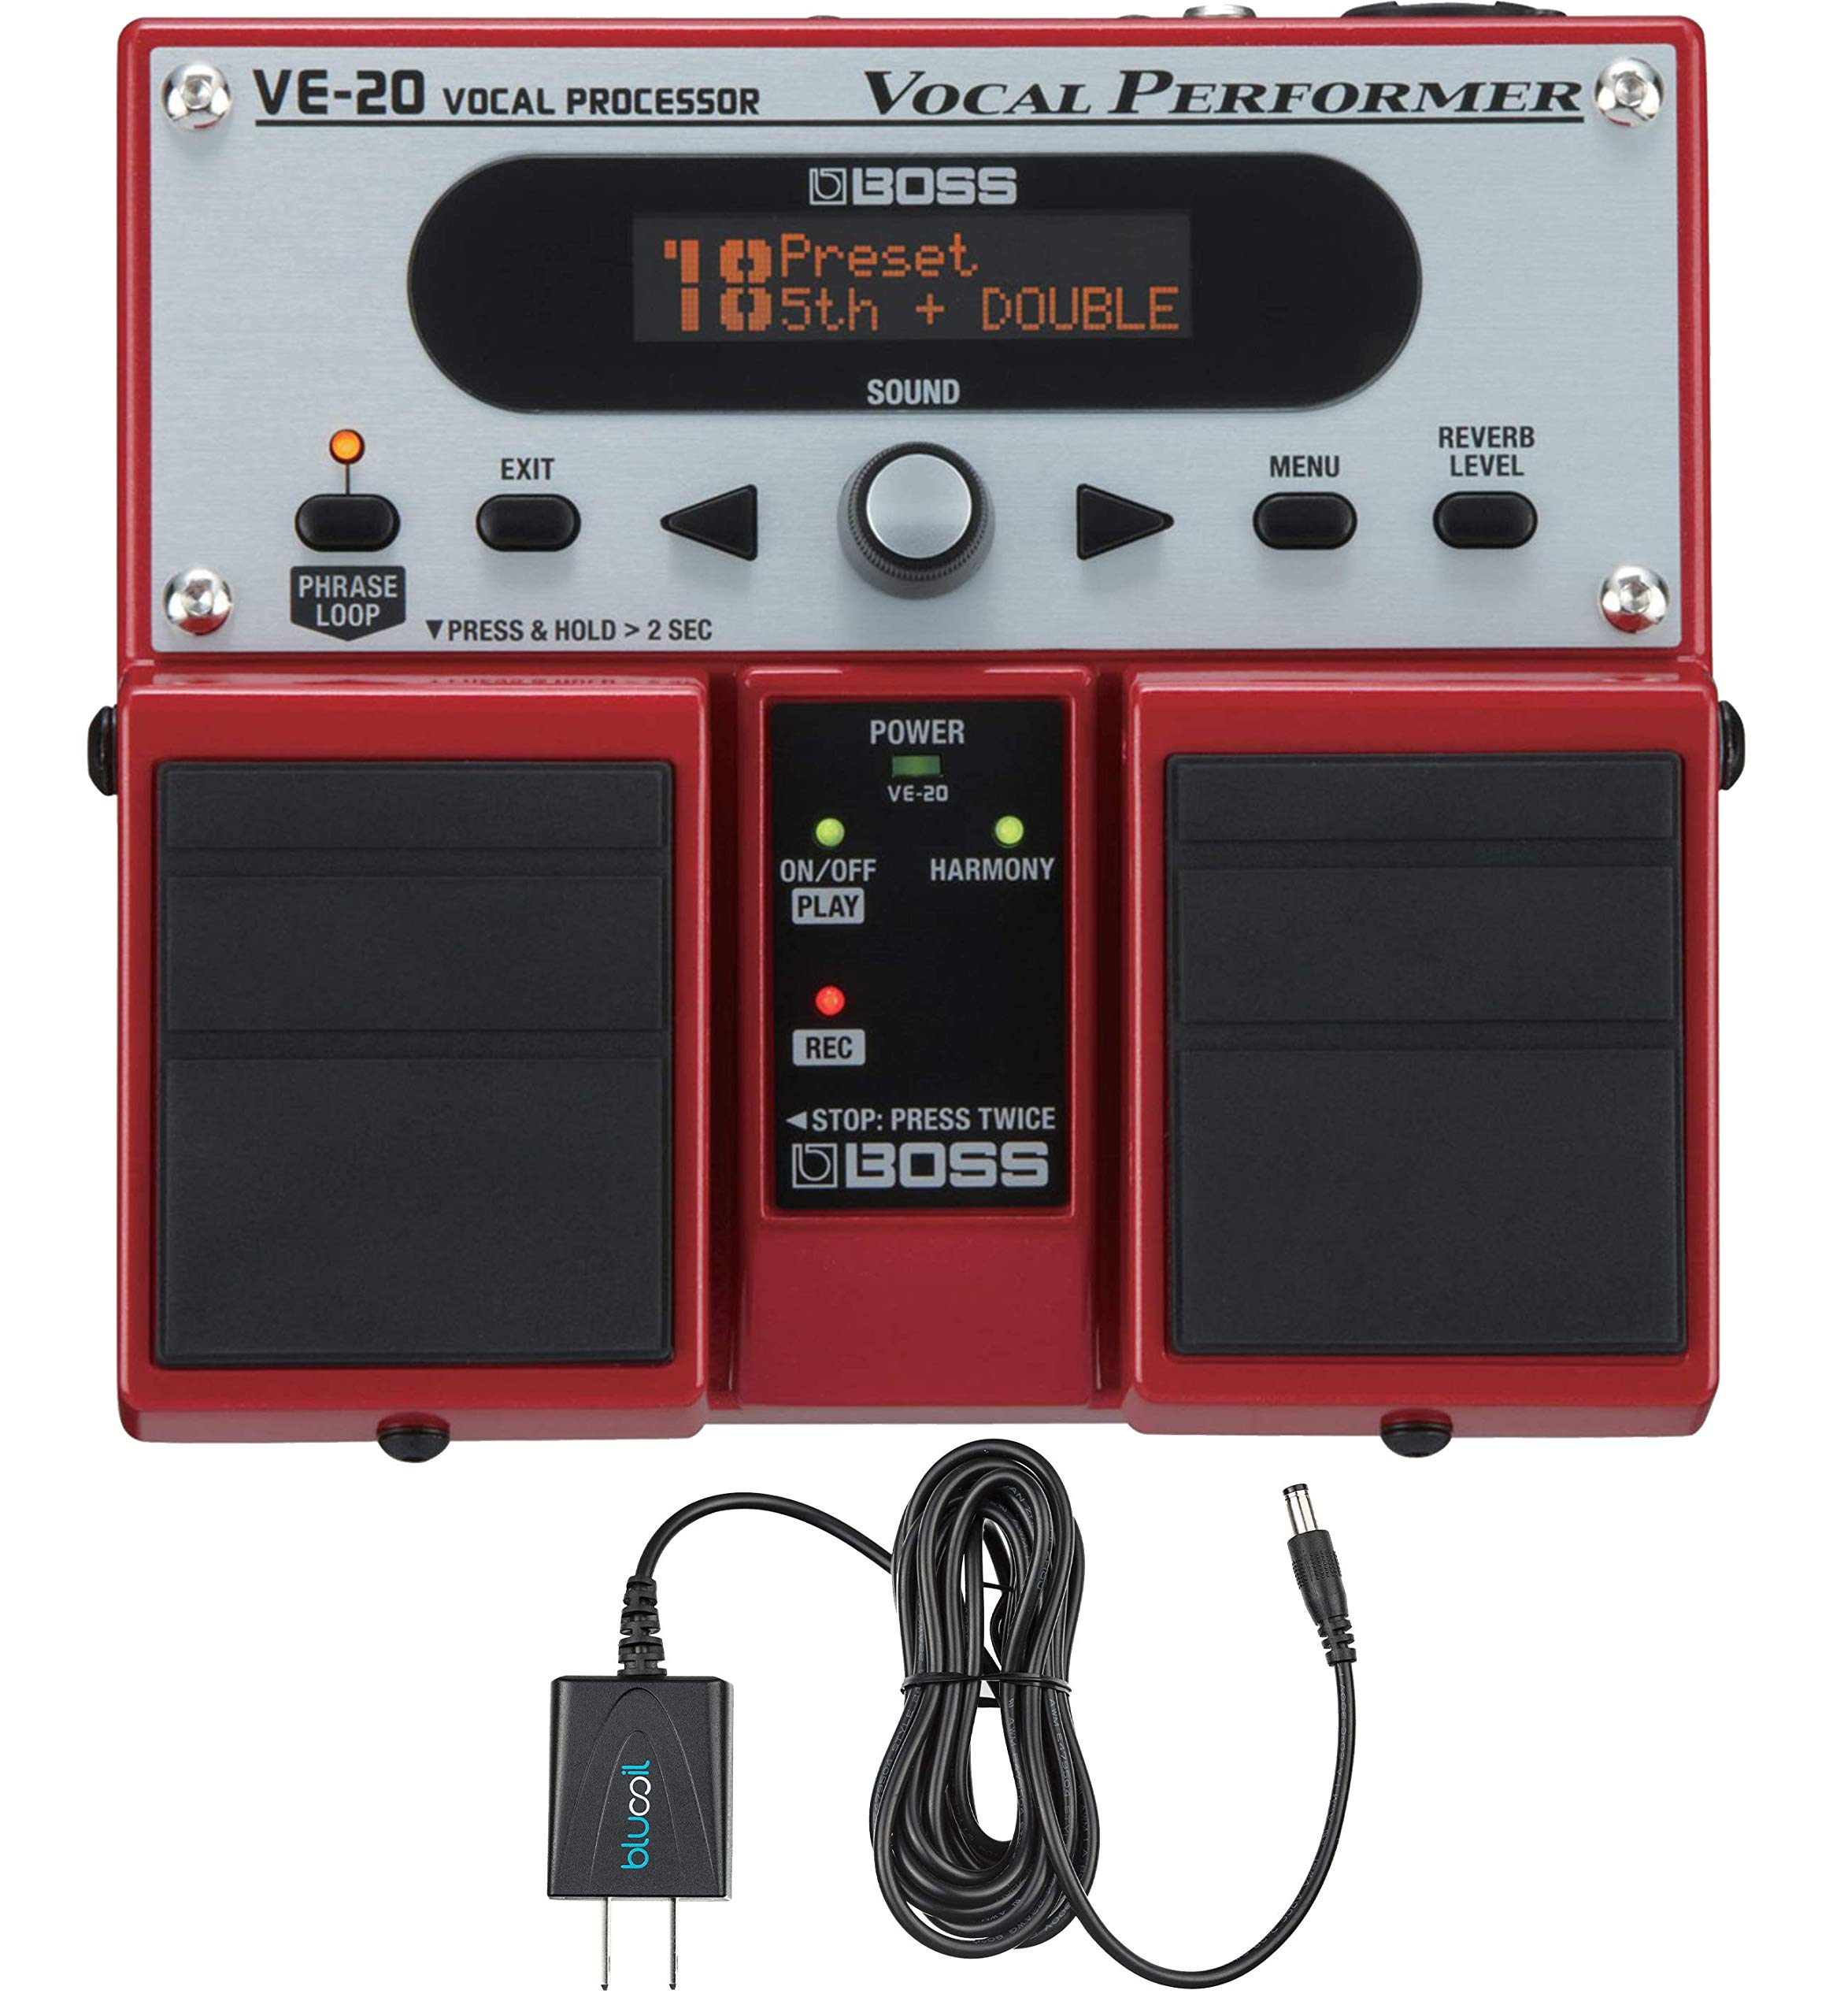 Boss VE-20 Vocal Performer Vocal Processor Pedal w/ Power Supply by BOSS (Image #1)